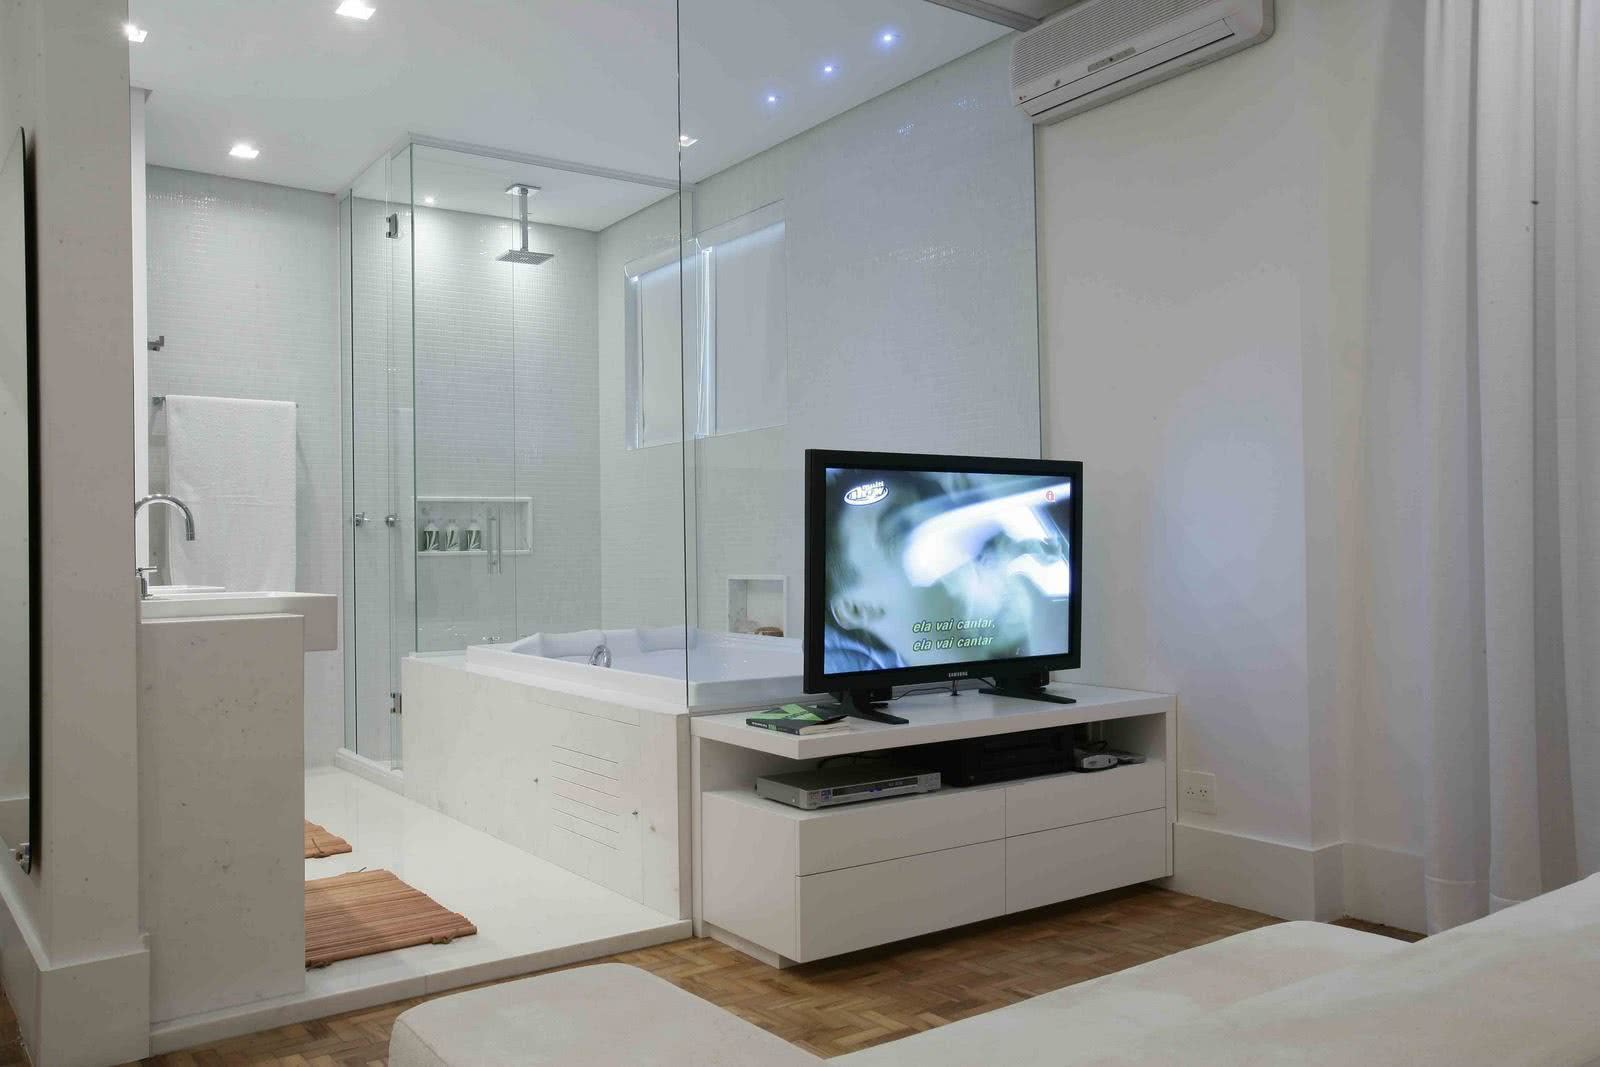 And why not invest in an open bathroom?